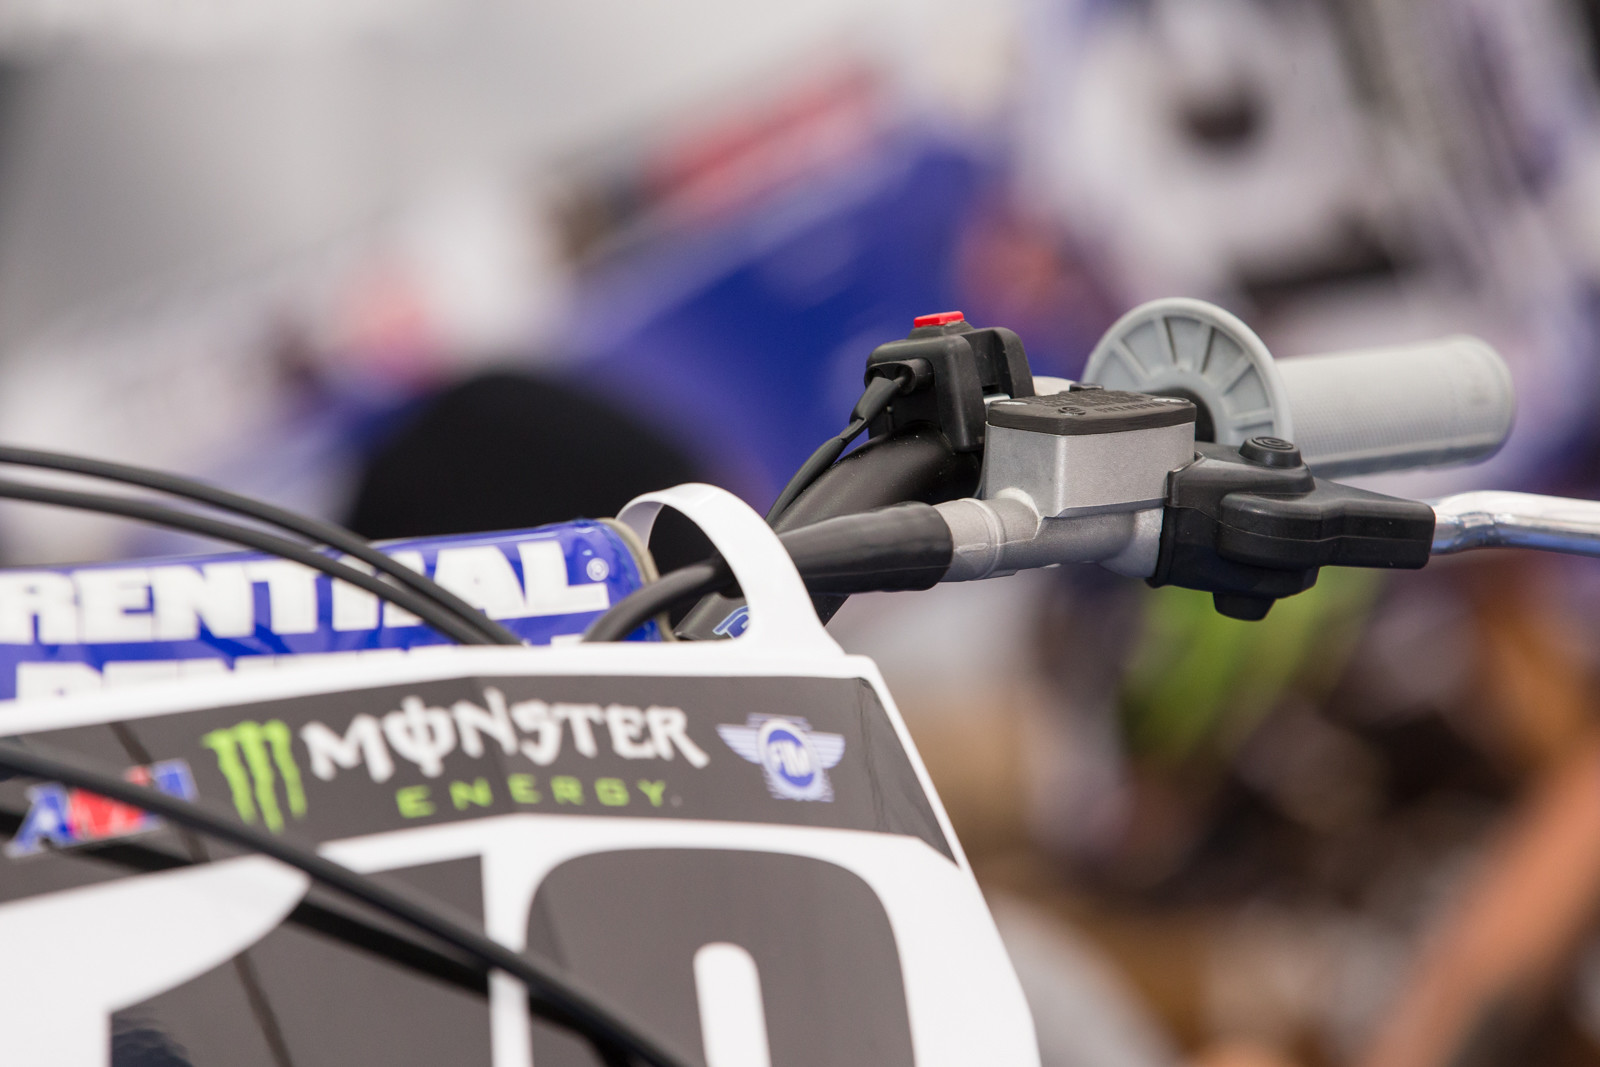 Davi Millsaps display bike featured a Brembo hydraulic clutch he had been testing at the time of his injury. He mentioned it had much better feel than the Nissin versions he had used in his Honda days.